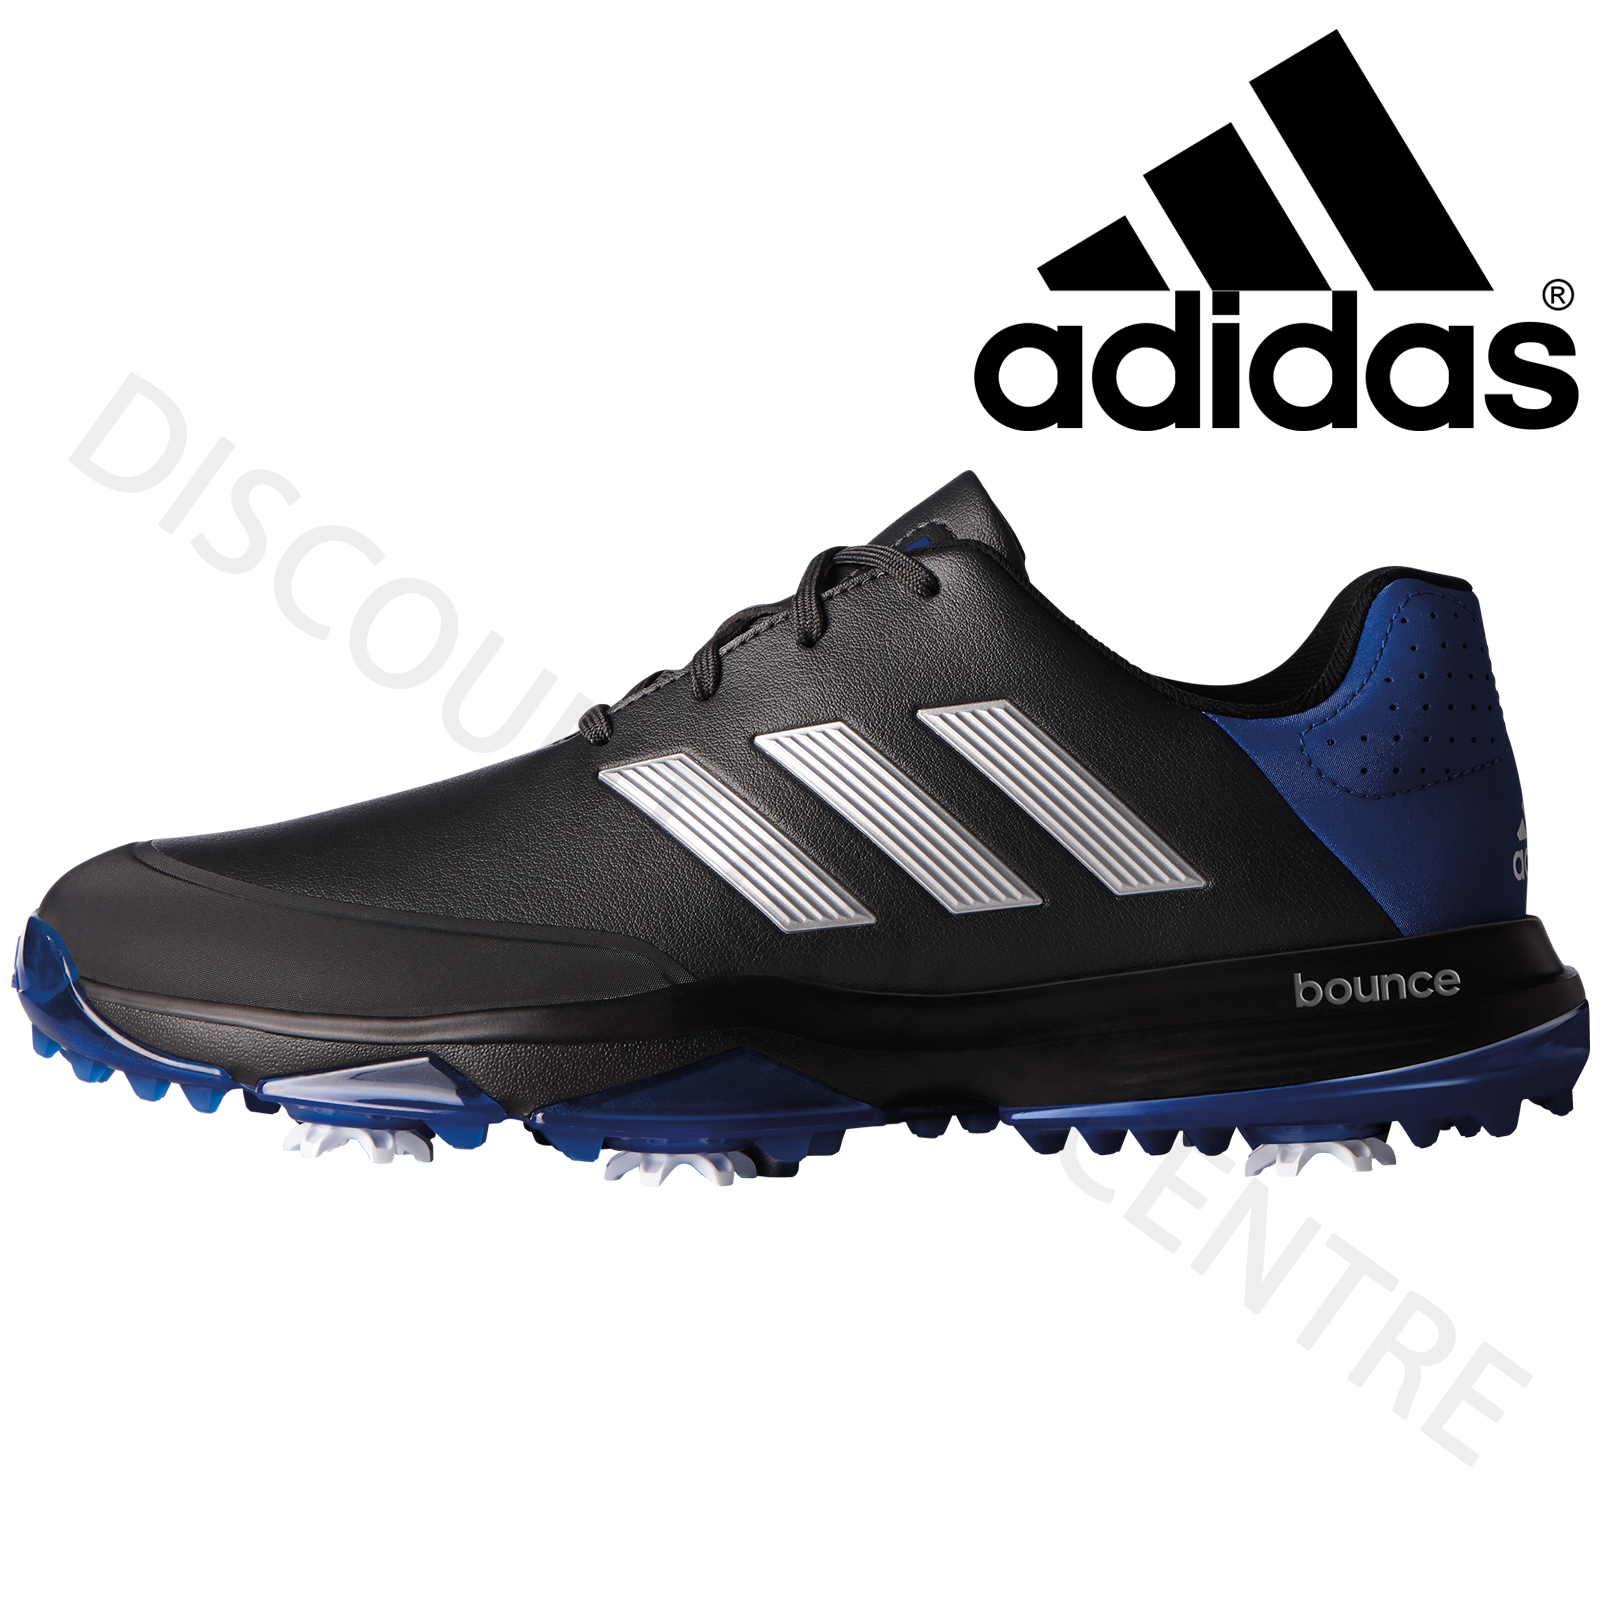 Adidas Golf Shoes Wide Fit